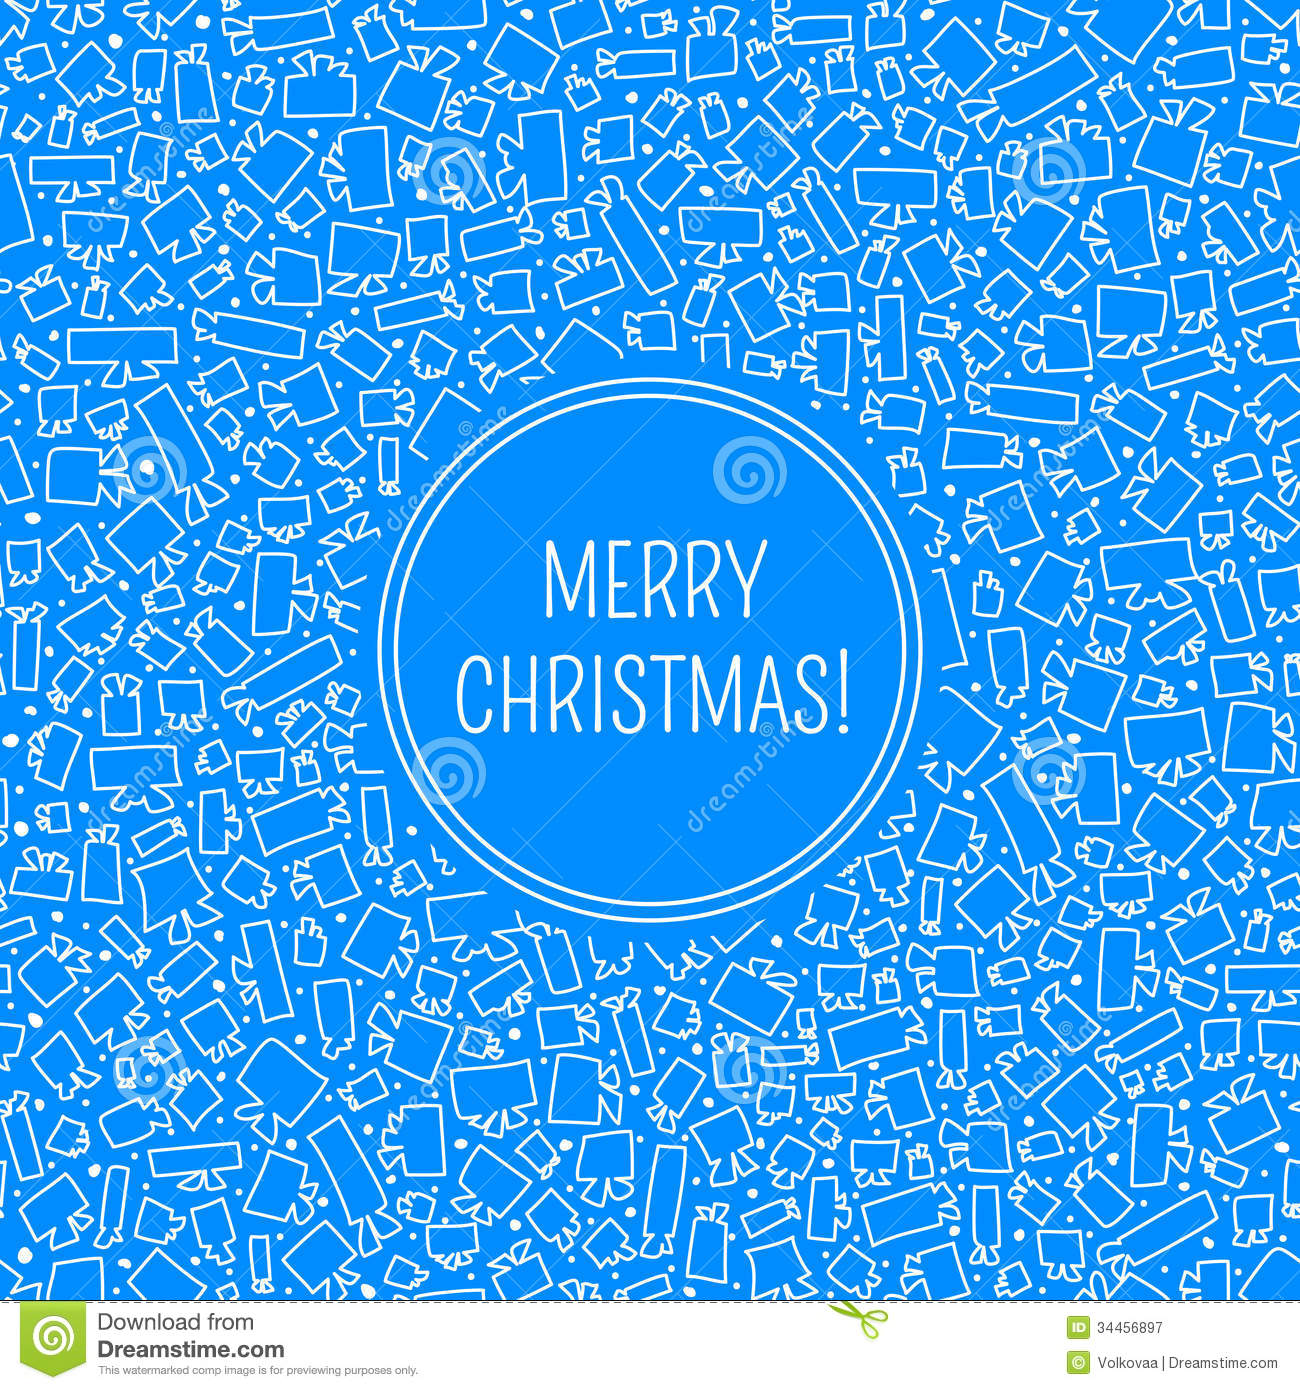 Vector Christmas Card Royalty Free Stock Photography - Image: 34456897